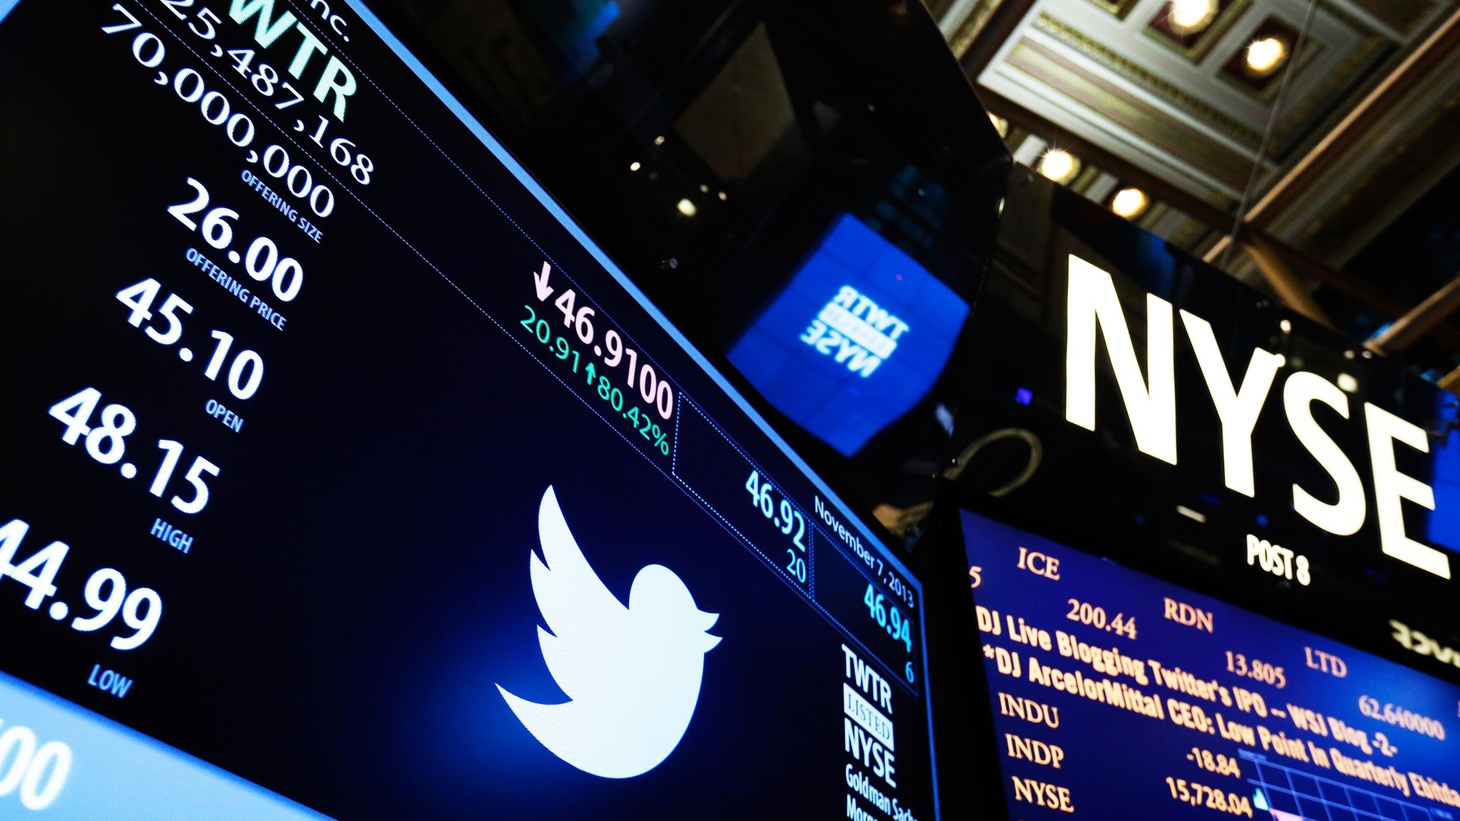 After yesterday's IPO, Twitter is one of the most highly valued companies on the NYSE. What is it contributing to popular culture? When will it start making money?